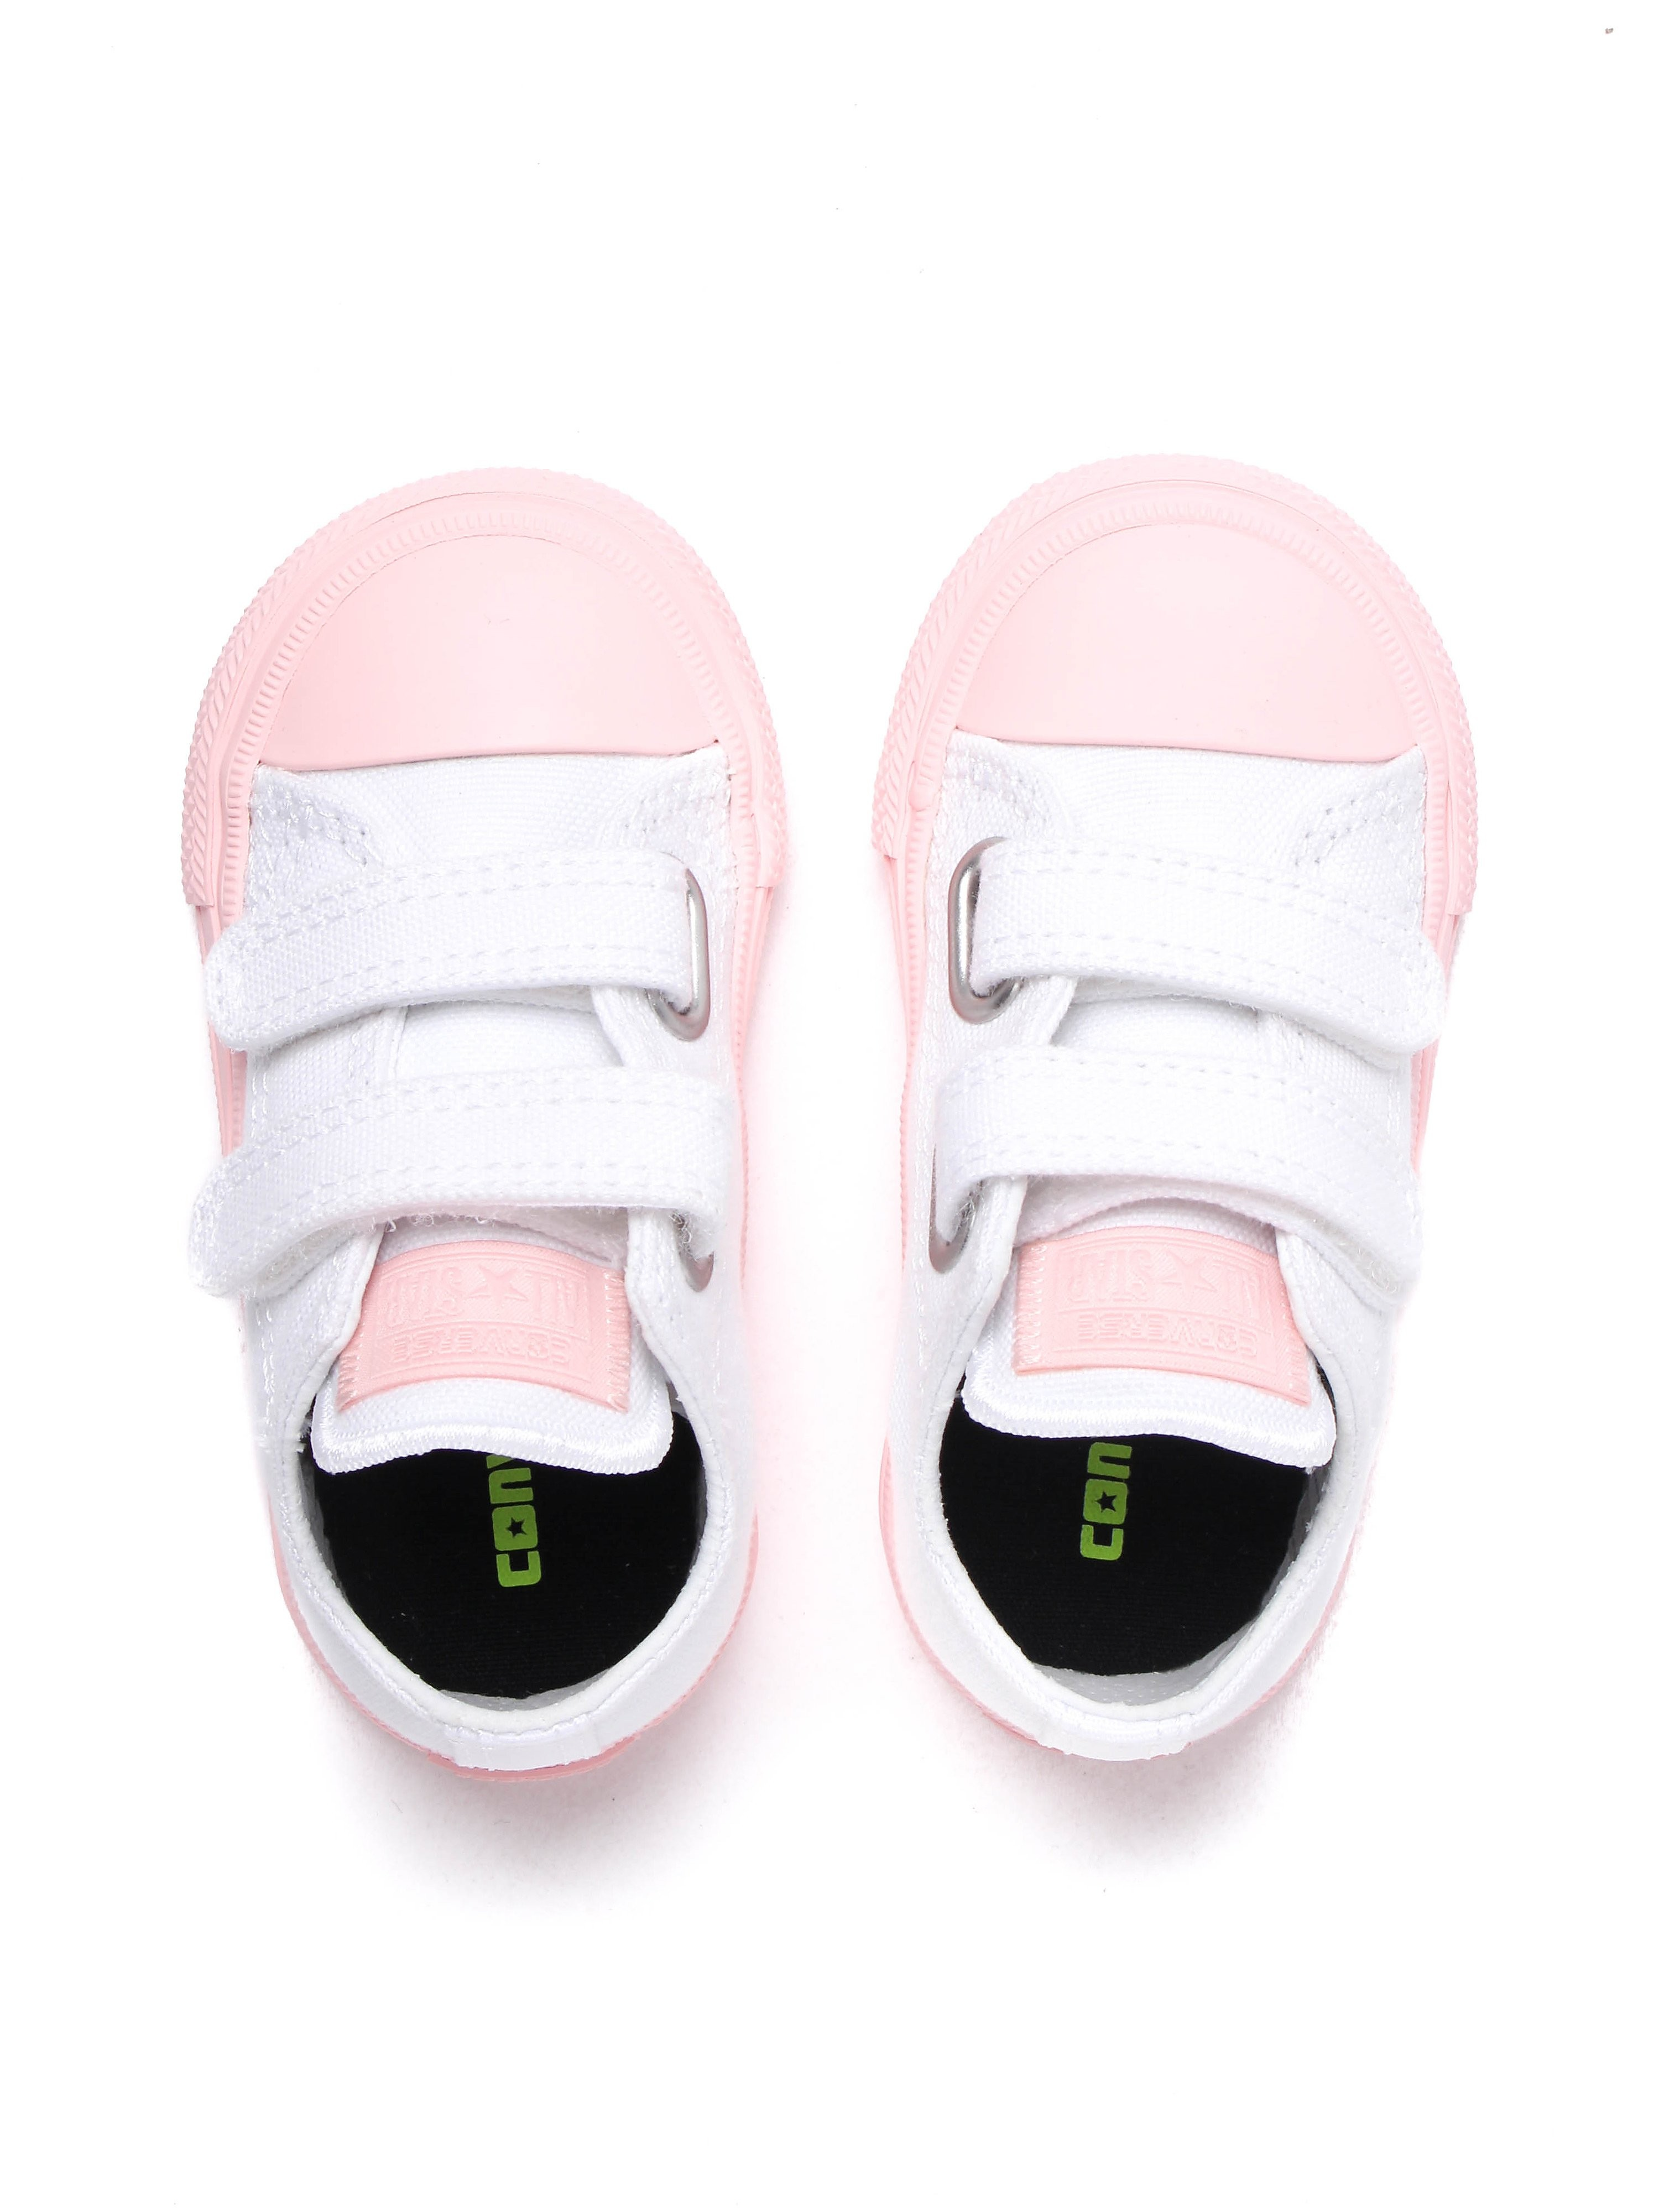 Converse Infant Chuck Taylor All Star 2V OX Canvas Trainers - White & Vapor Pink